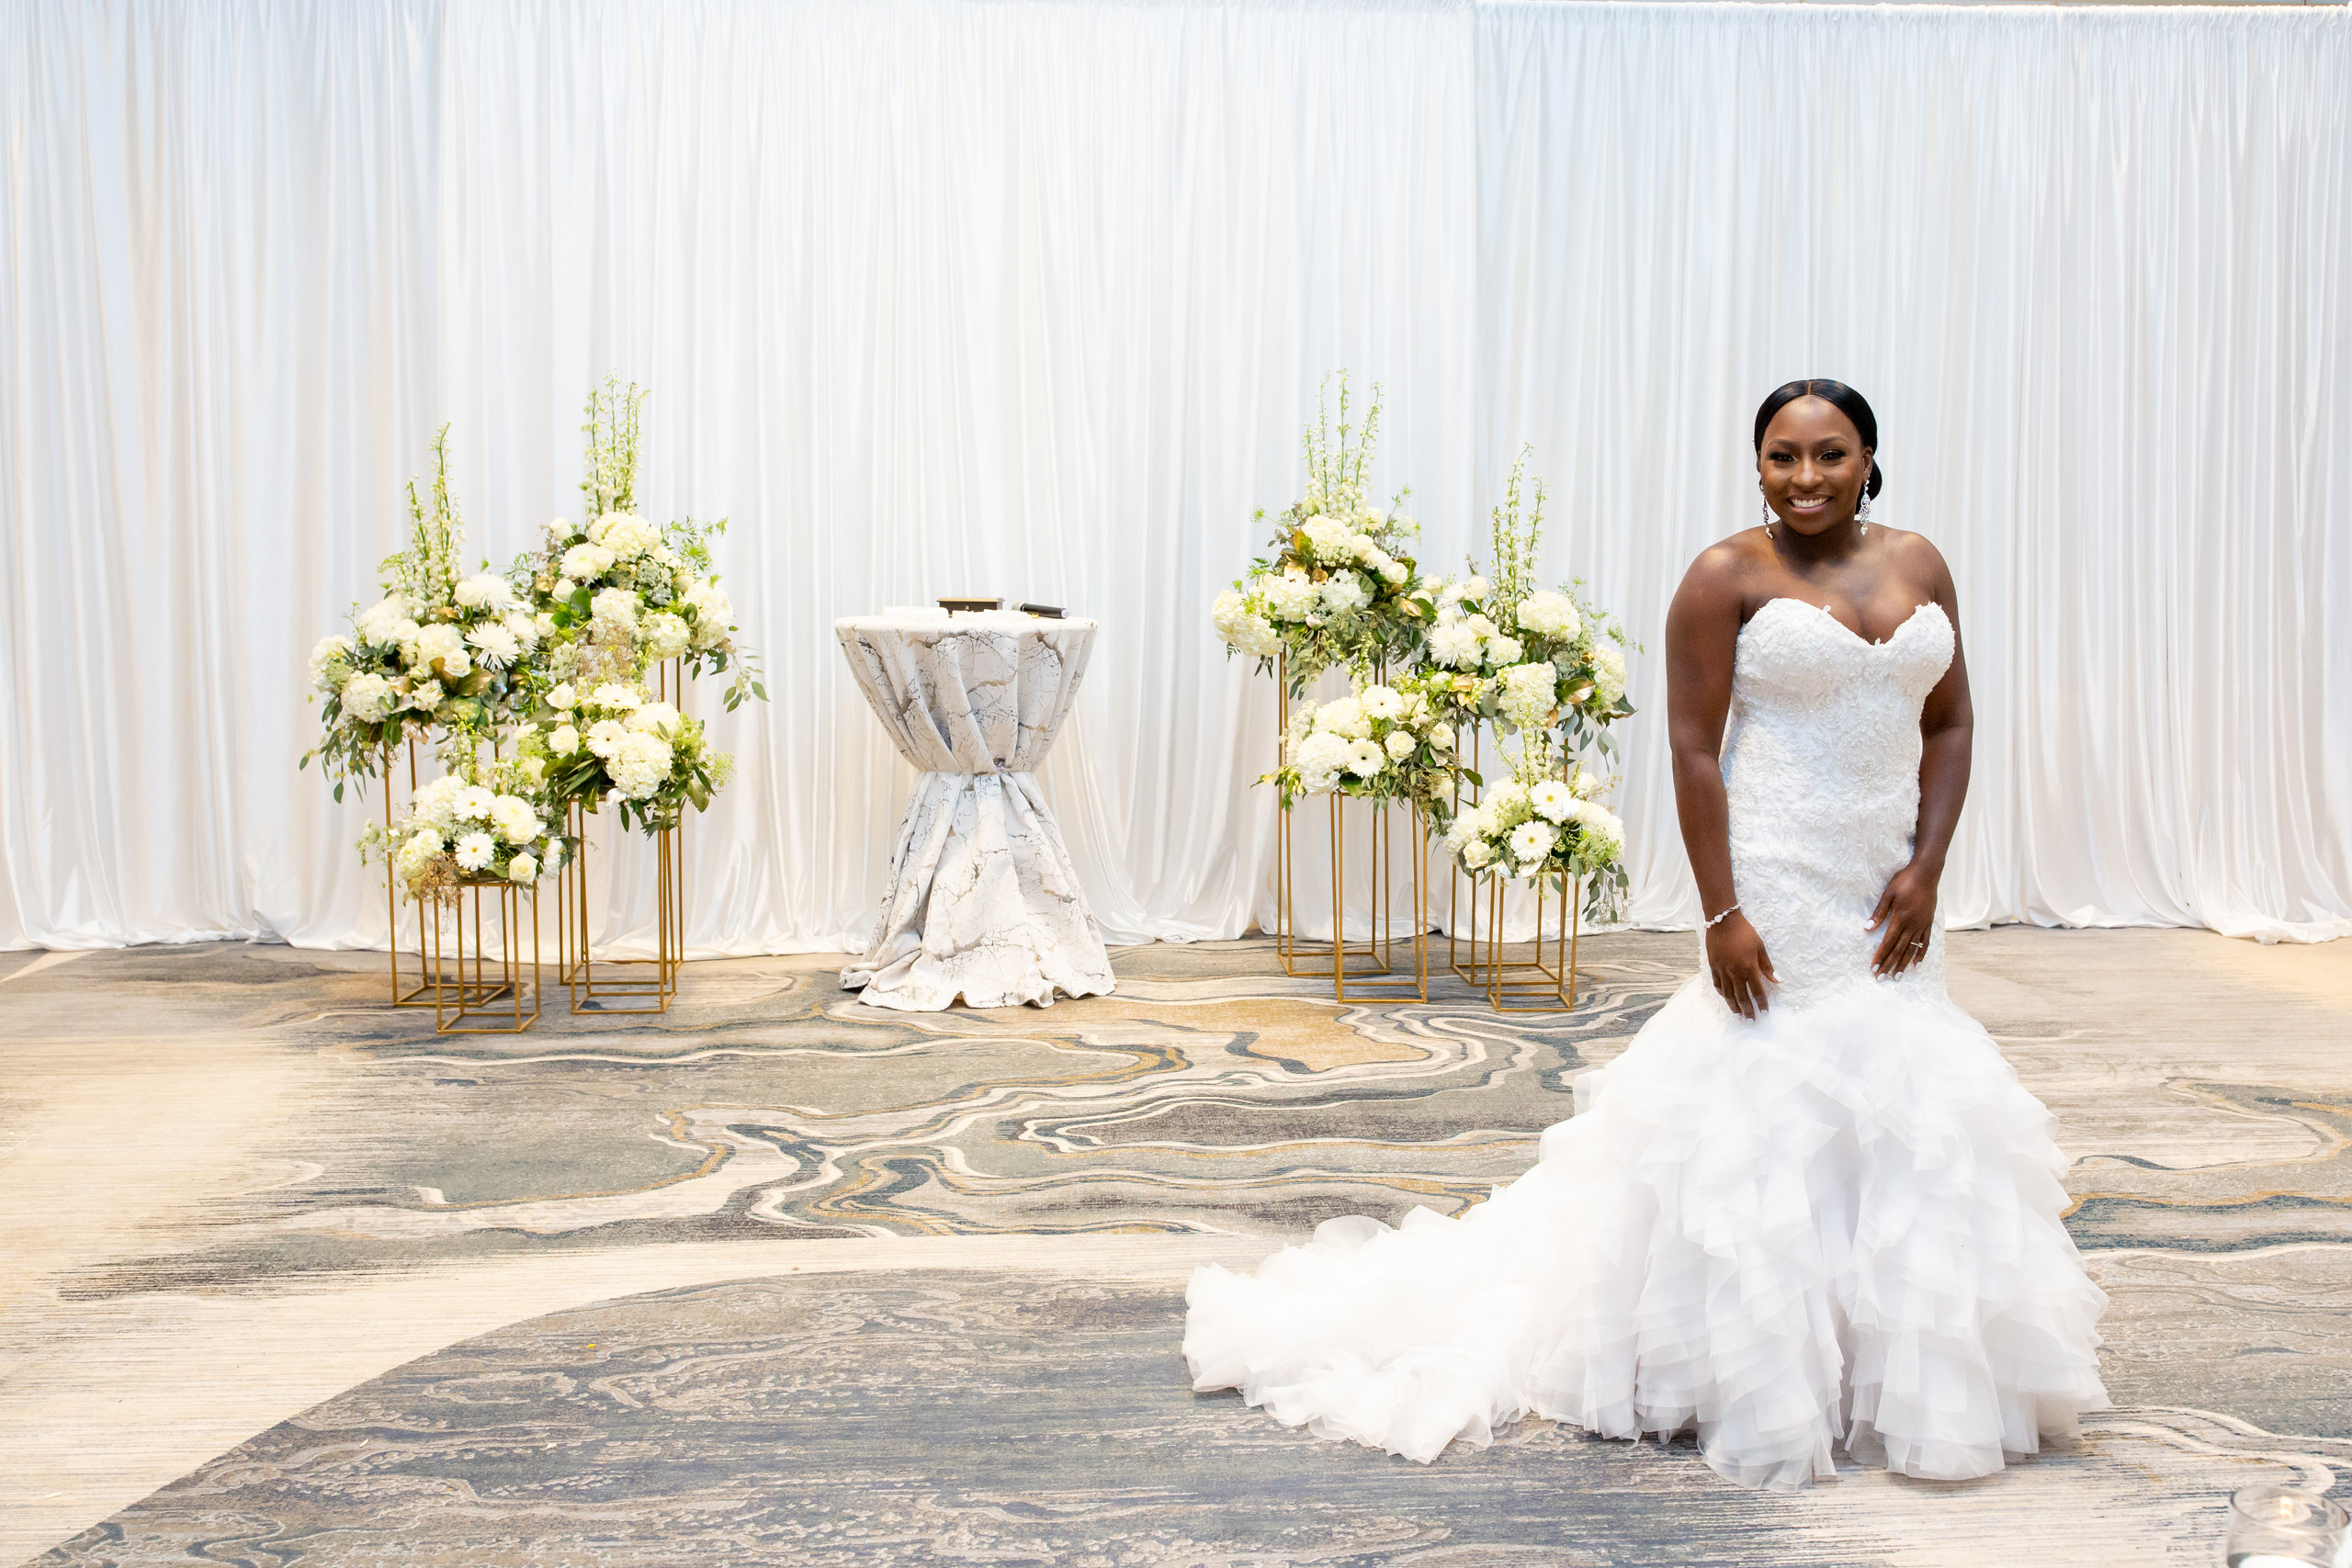 The bride poses in the ceremony area before guests arrive for the wedding ceremony at the Hilton Main in Norfolk, Virginia.